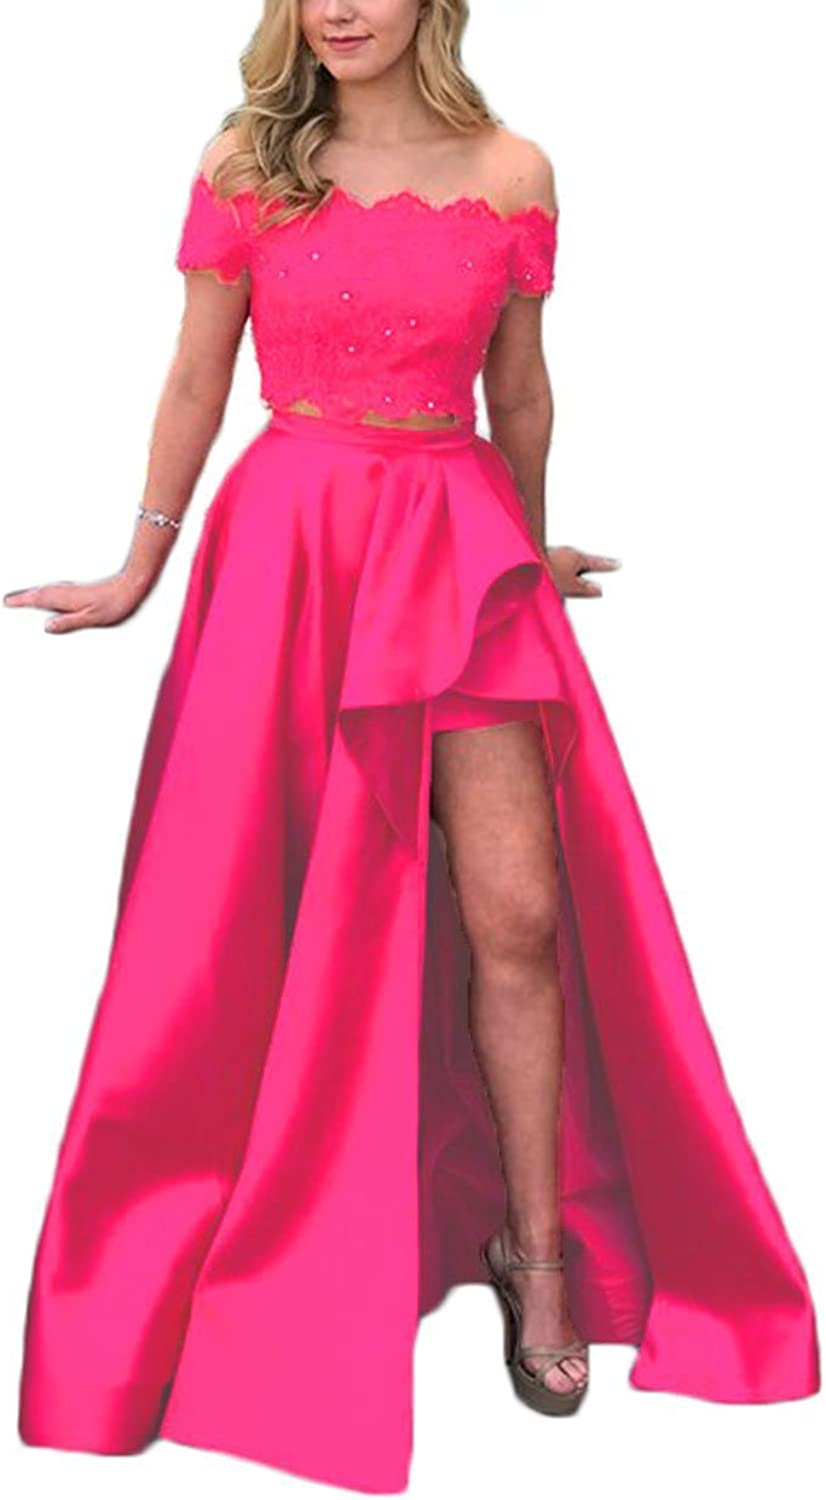 Alilith.Z Sexy Off Shoulder 2 Piece Prom Dresses High Low Beaded Lace Formal Evening Party Dresses Women Long